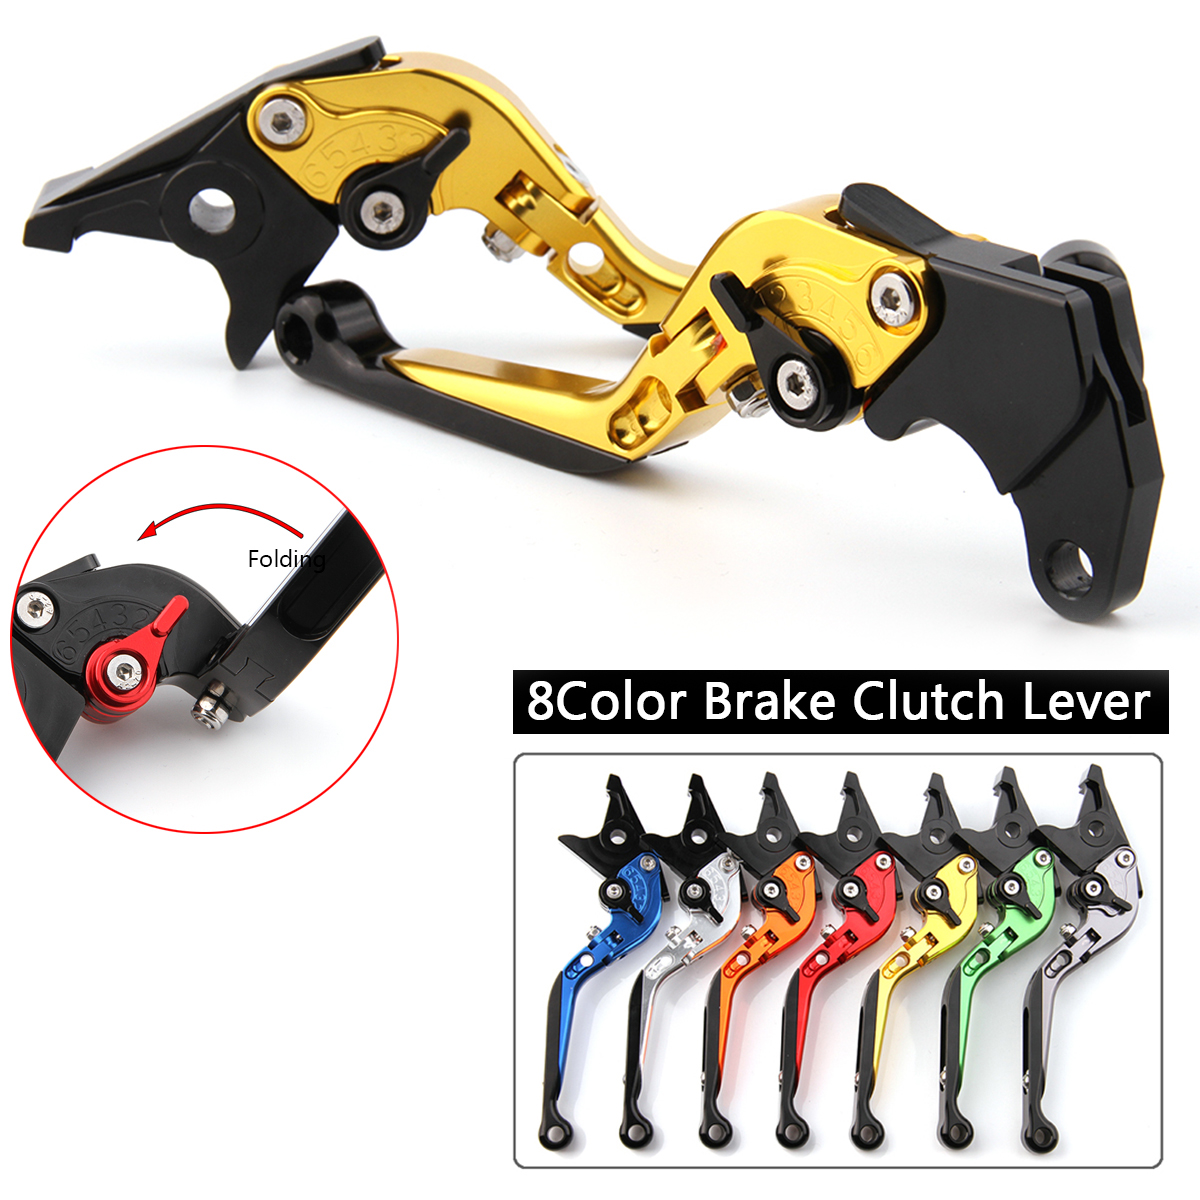 CNC Levers for Ducati SuperSport SS 2017 2018 Motorcycle Racing Adjustable Folding Extendable Brake Clutch